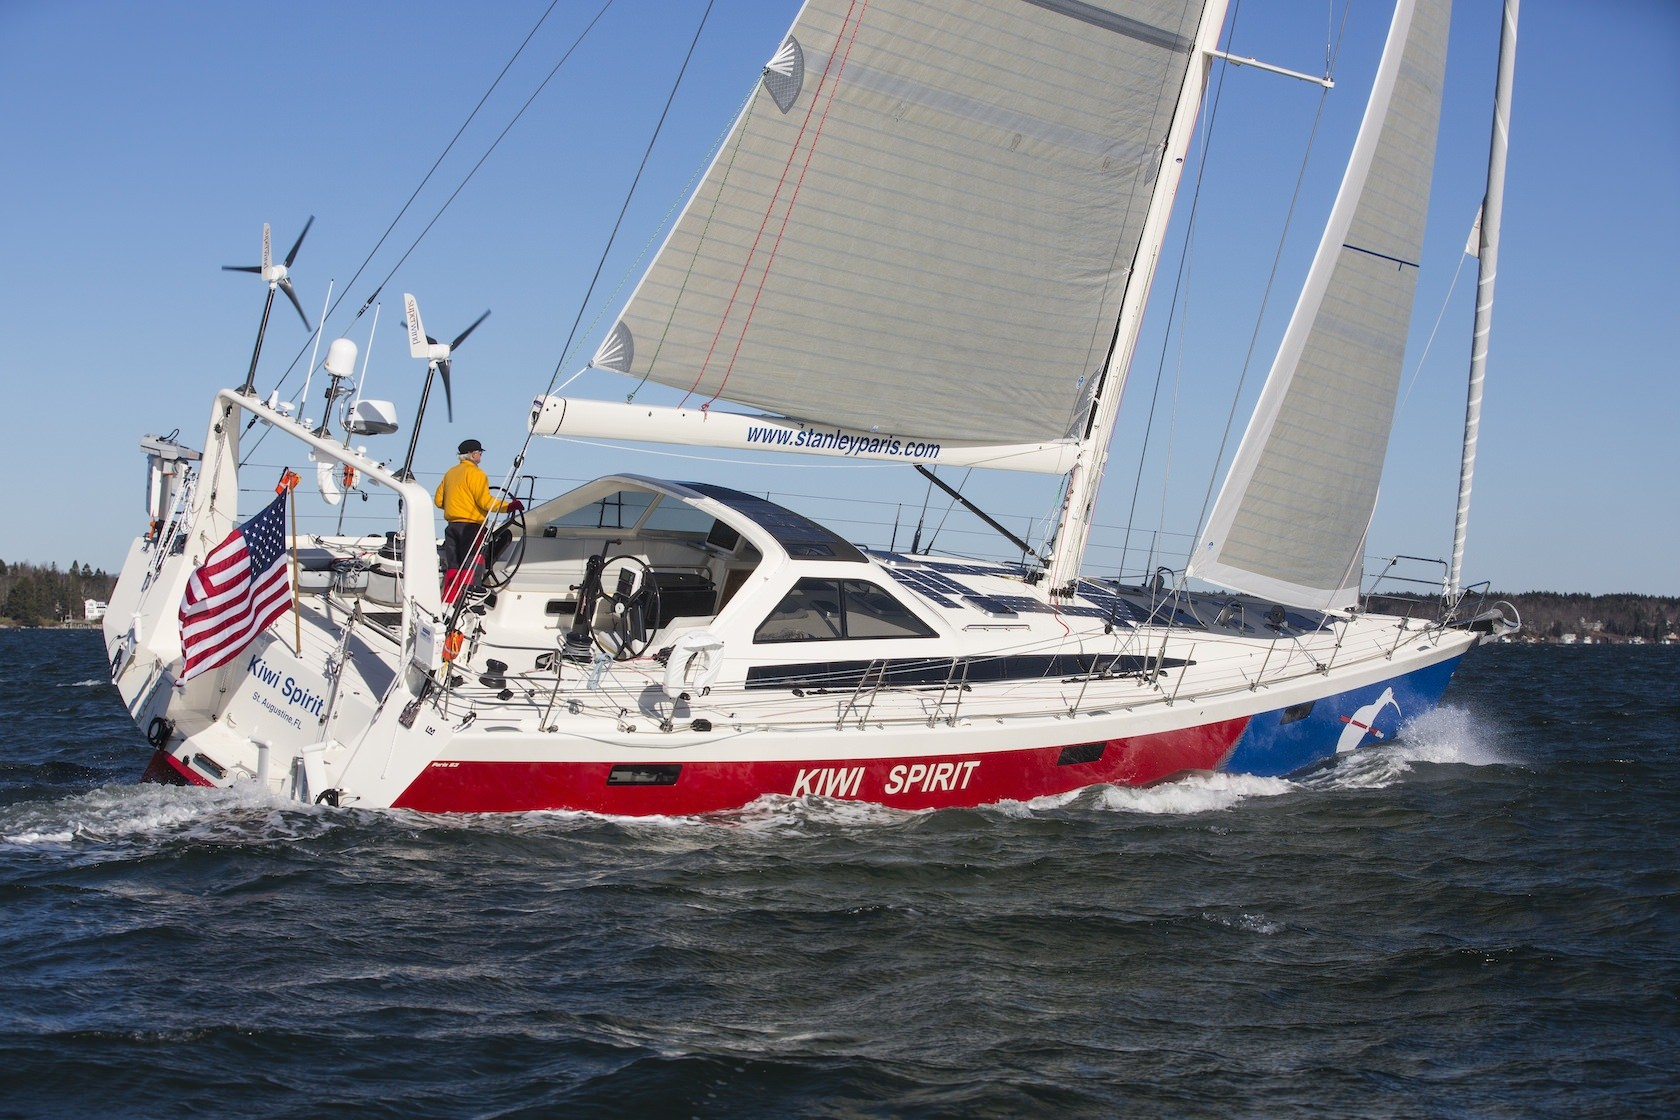 Kiwi Spirit: A Family Scratch Boat for the Marion-Bermuda Race